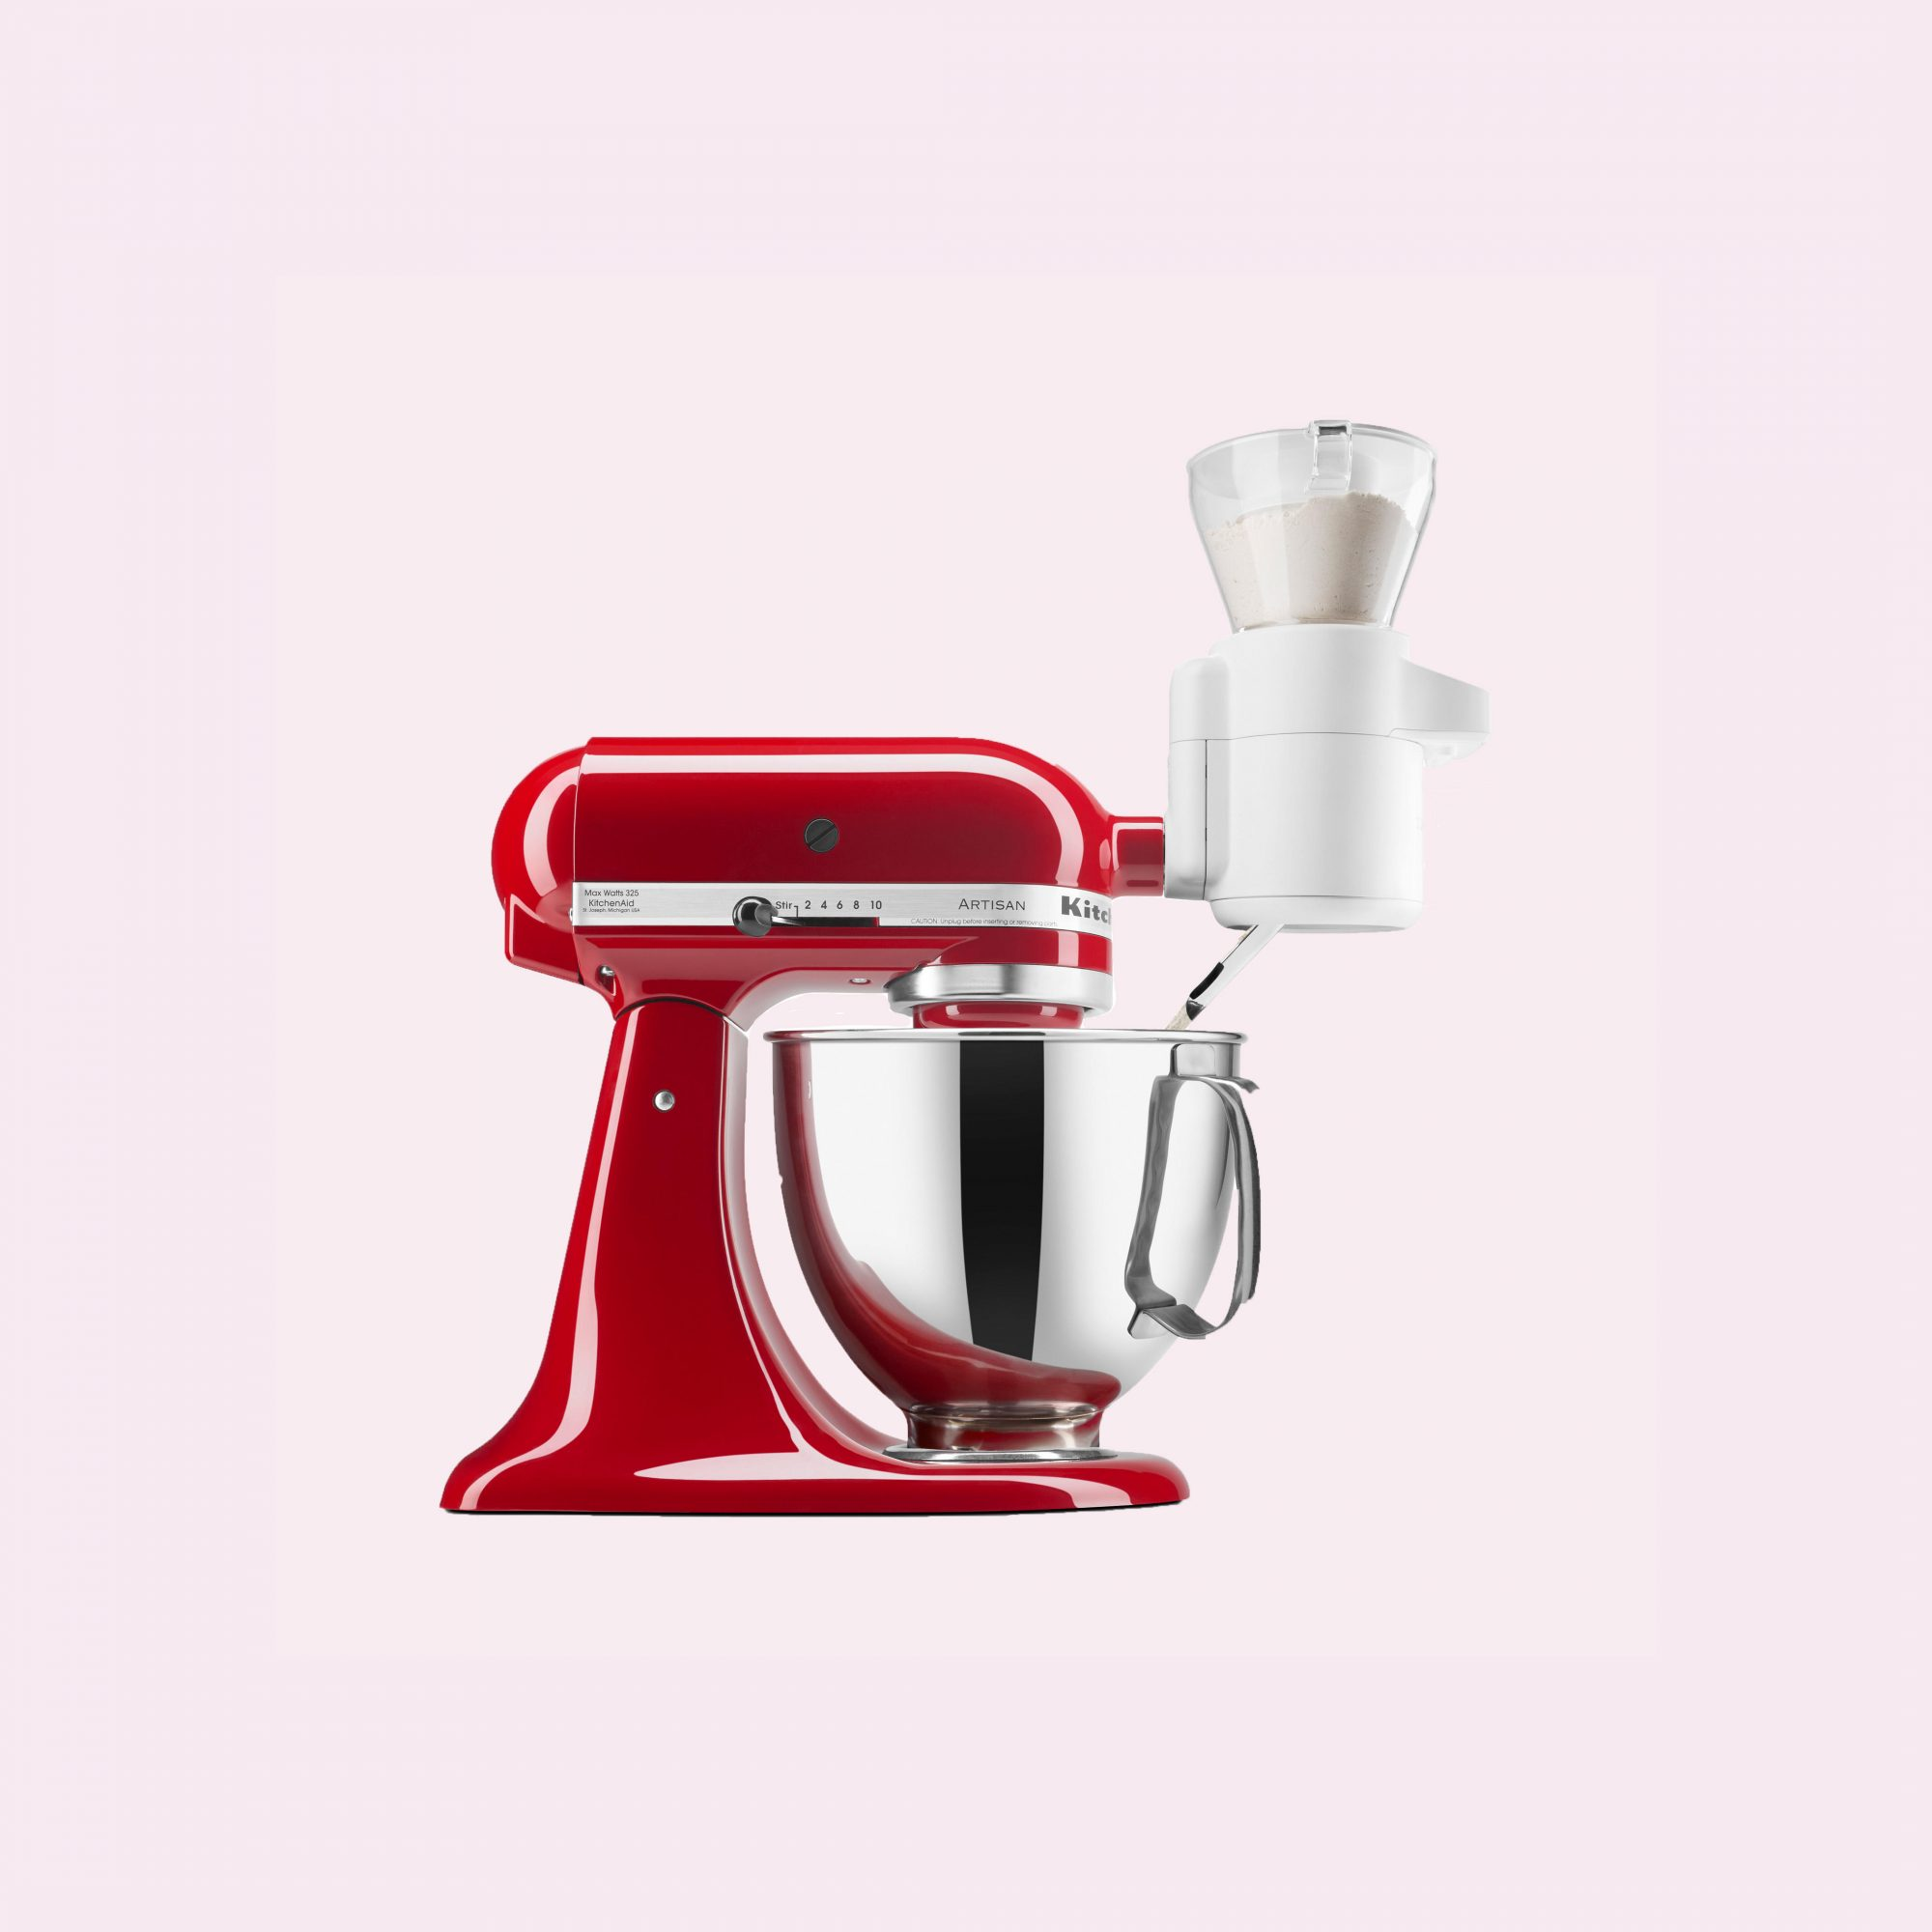 15 Kitchenaid Mixer Attachments You Should Add To Your